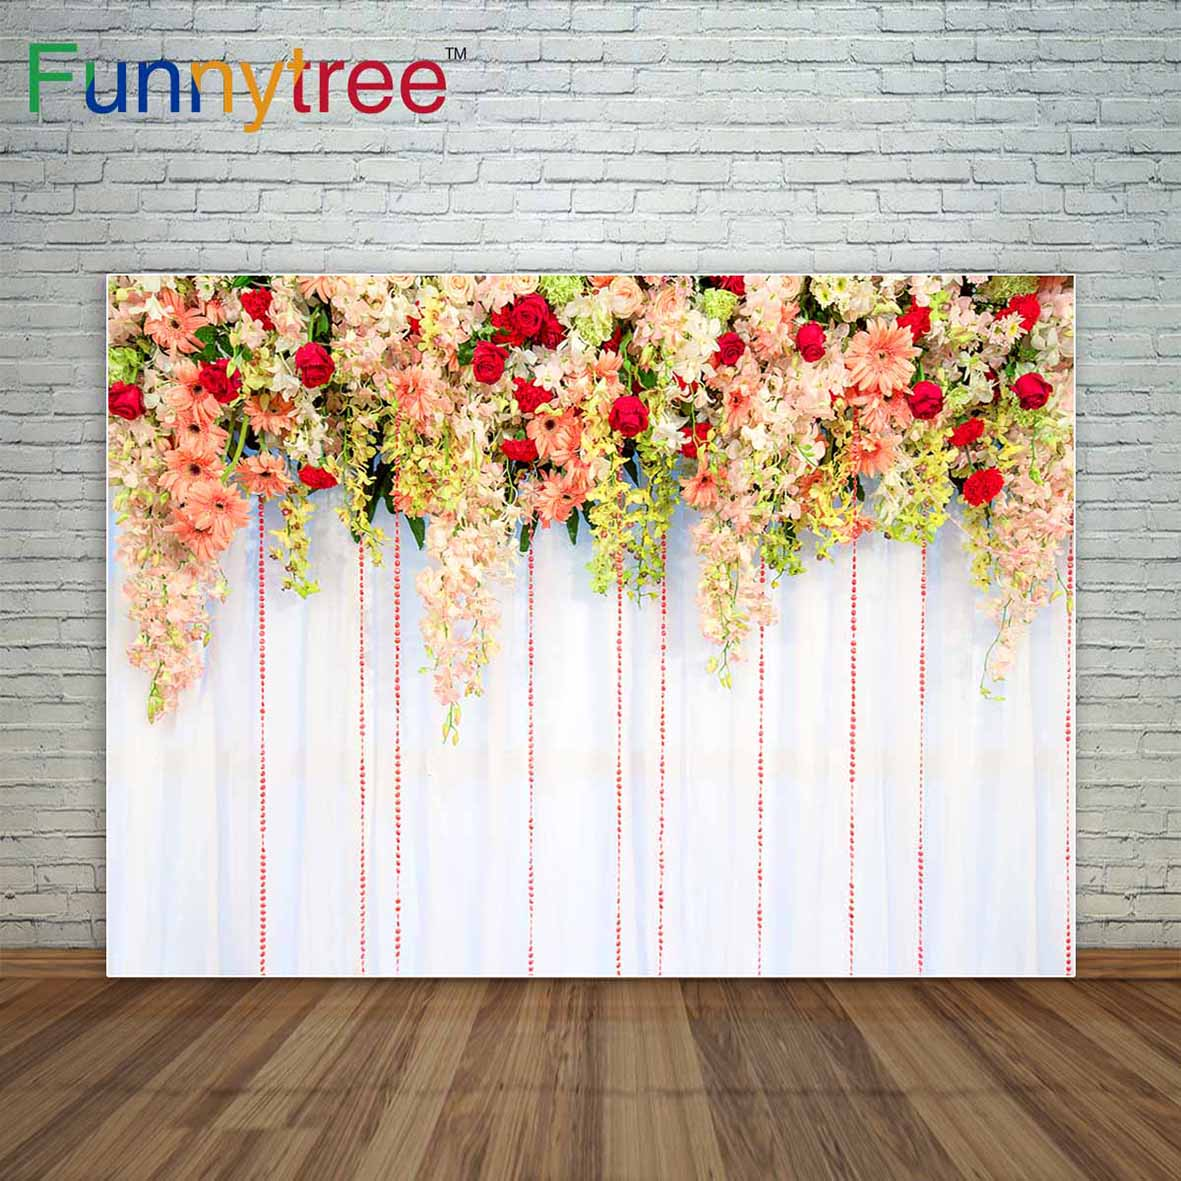 Funnytree photo background tropical flowers with green leaves background for wedding Valentine's Day decoration photocall vinyl